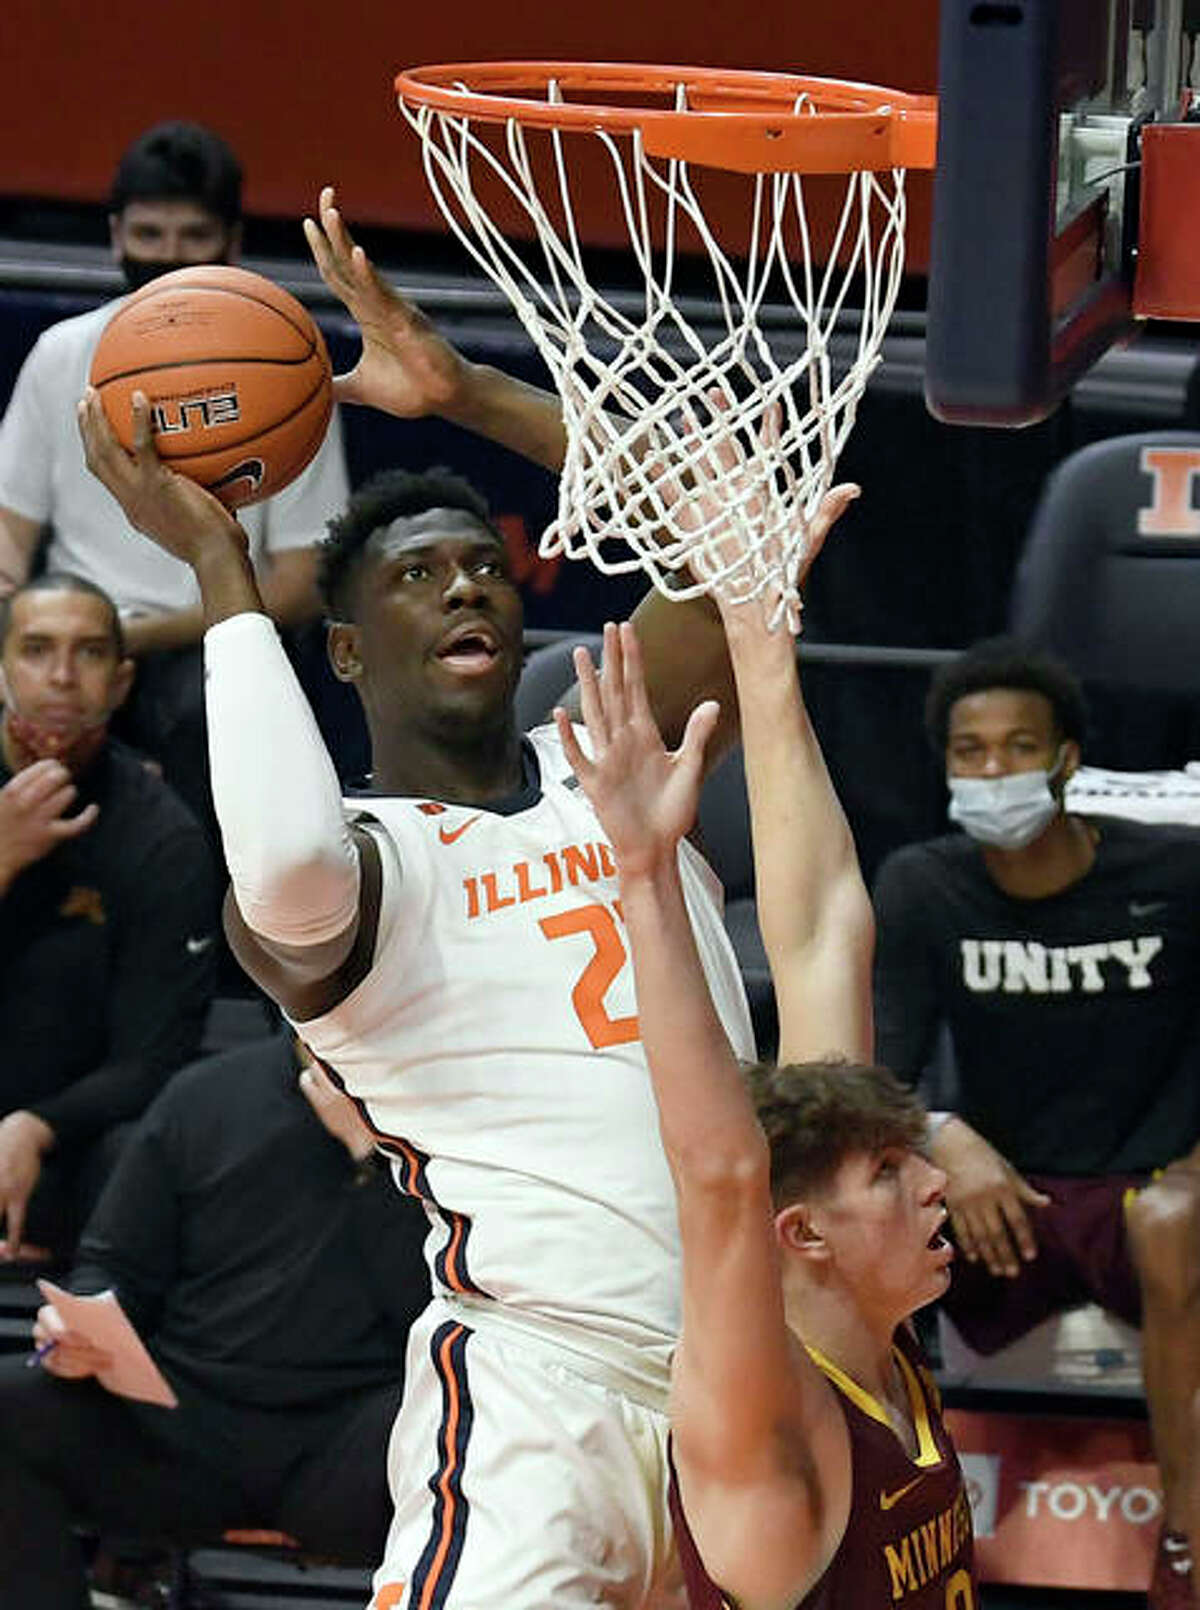 Illinois center Kofi Cockburn (21) puts the ball up as Minnesota's center Liam Robbins (0) defends in the first half of an NCAA college basketball game Tuesday, Dec. 15, 2020, in Champaign, Ill.